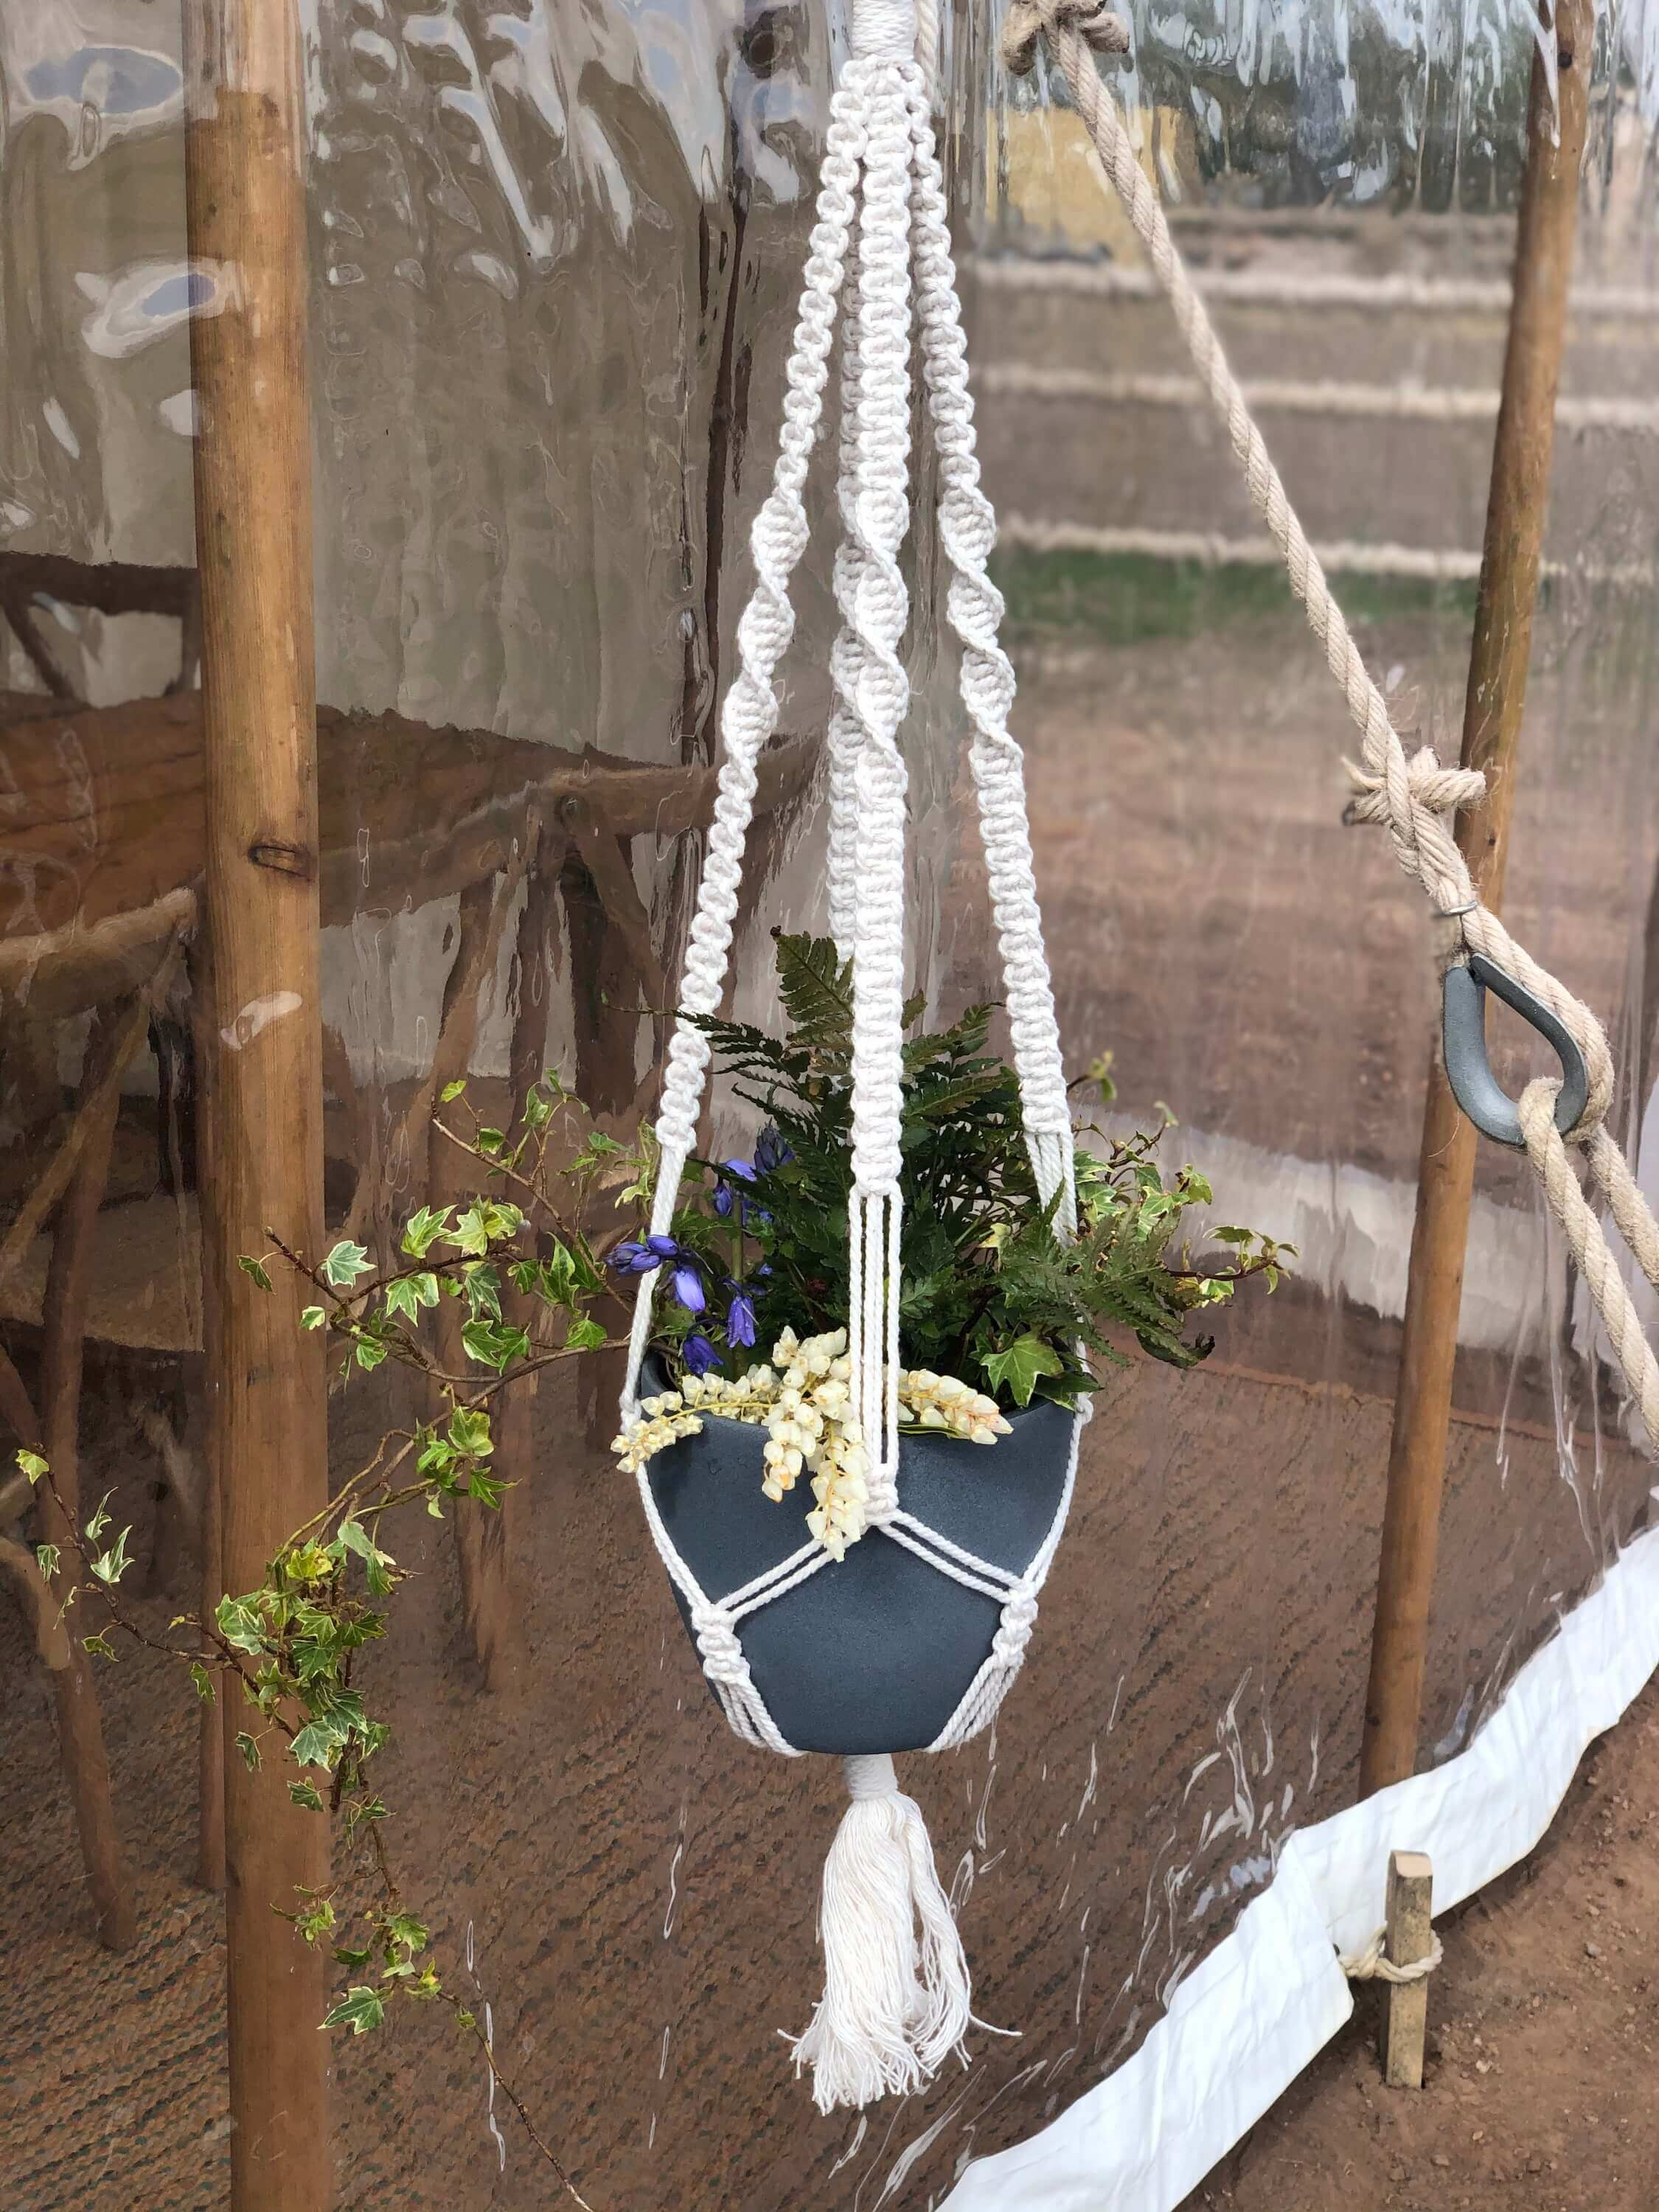 macrame plant hangers as wedding marquee styling decor